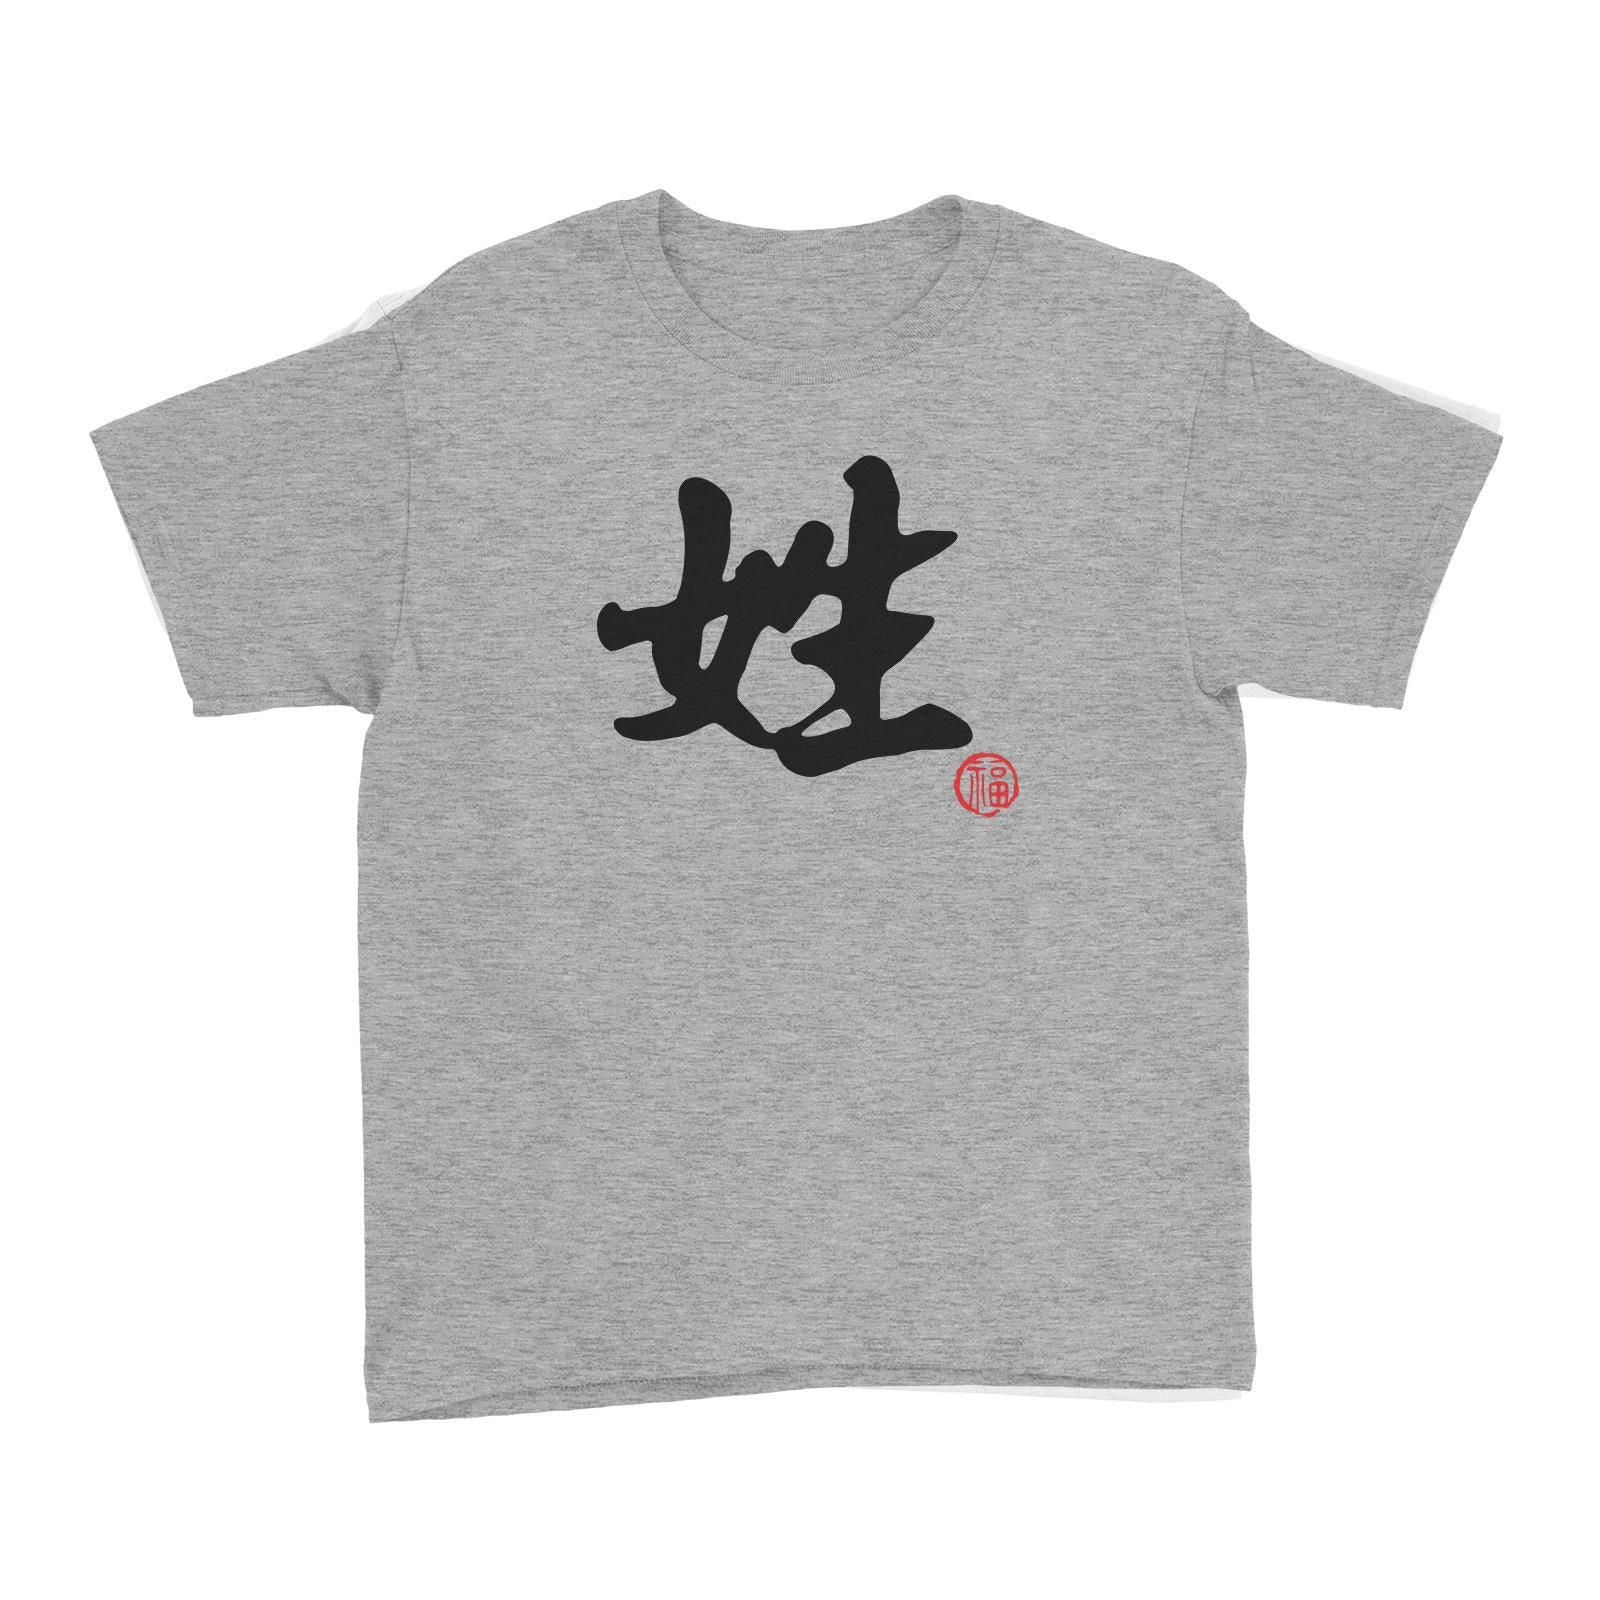 Chinese Surname B&W with Prosperity Seal Kid's T-Shirt Matching Family Personalizable Designs